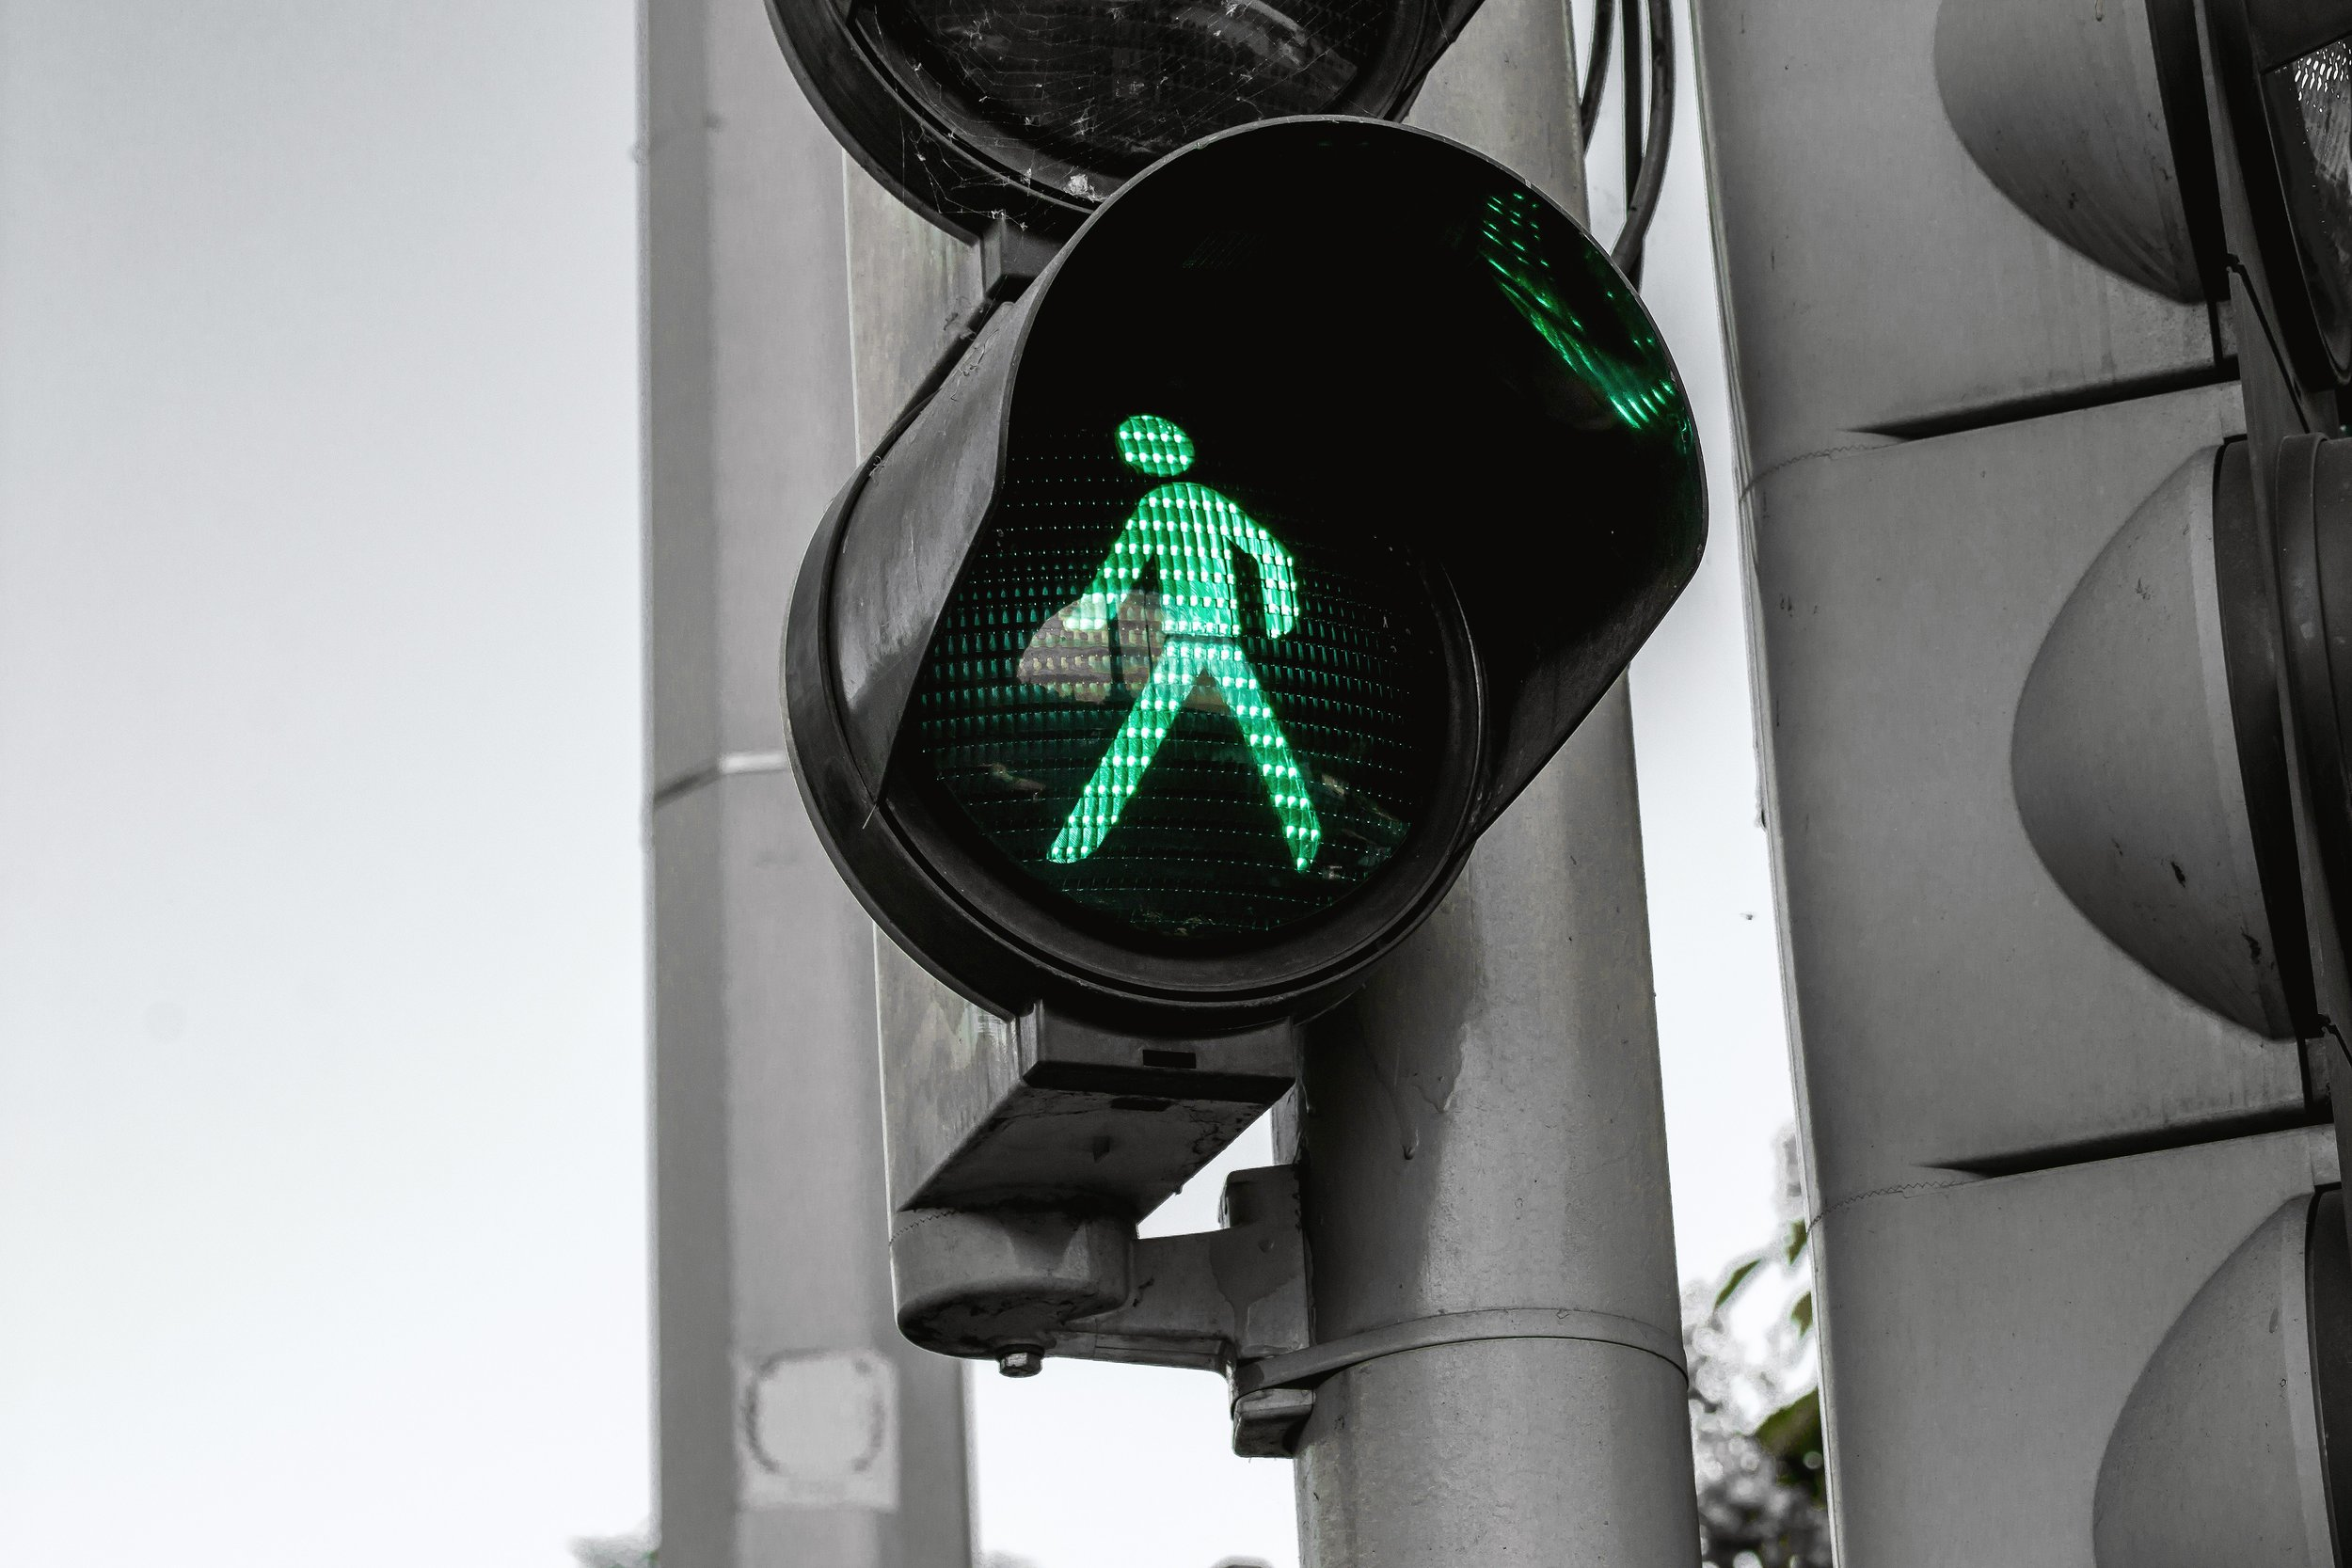 Adult Pedestrian Casualties - Want to see our process in action?